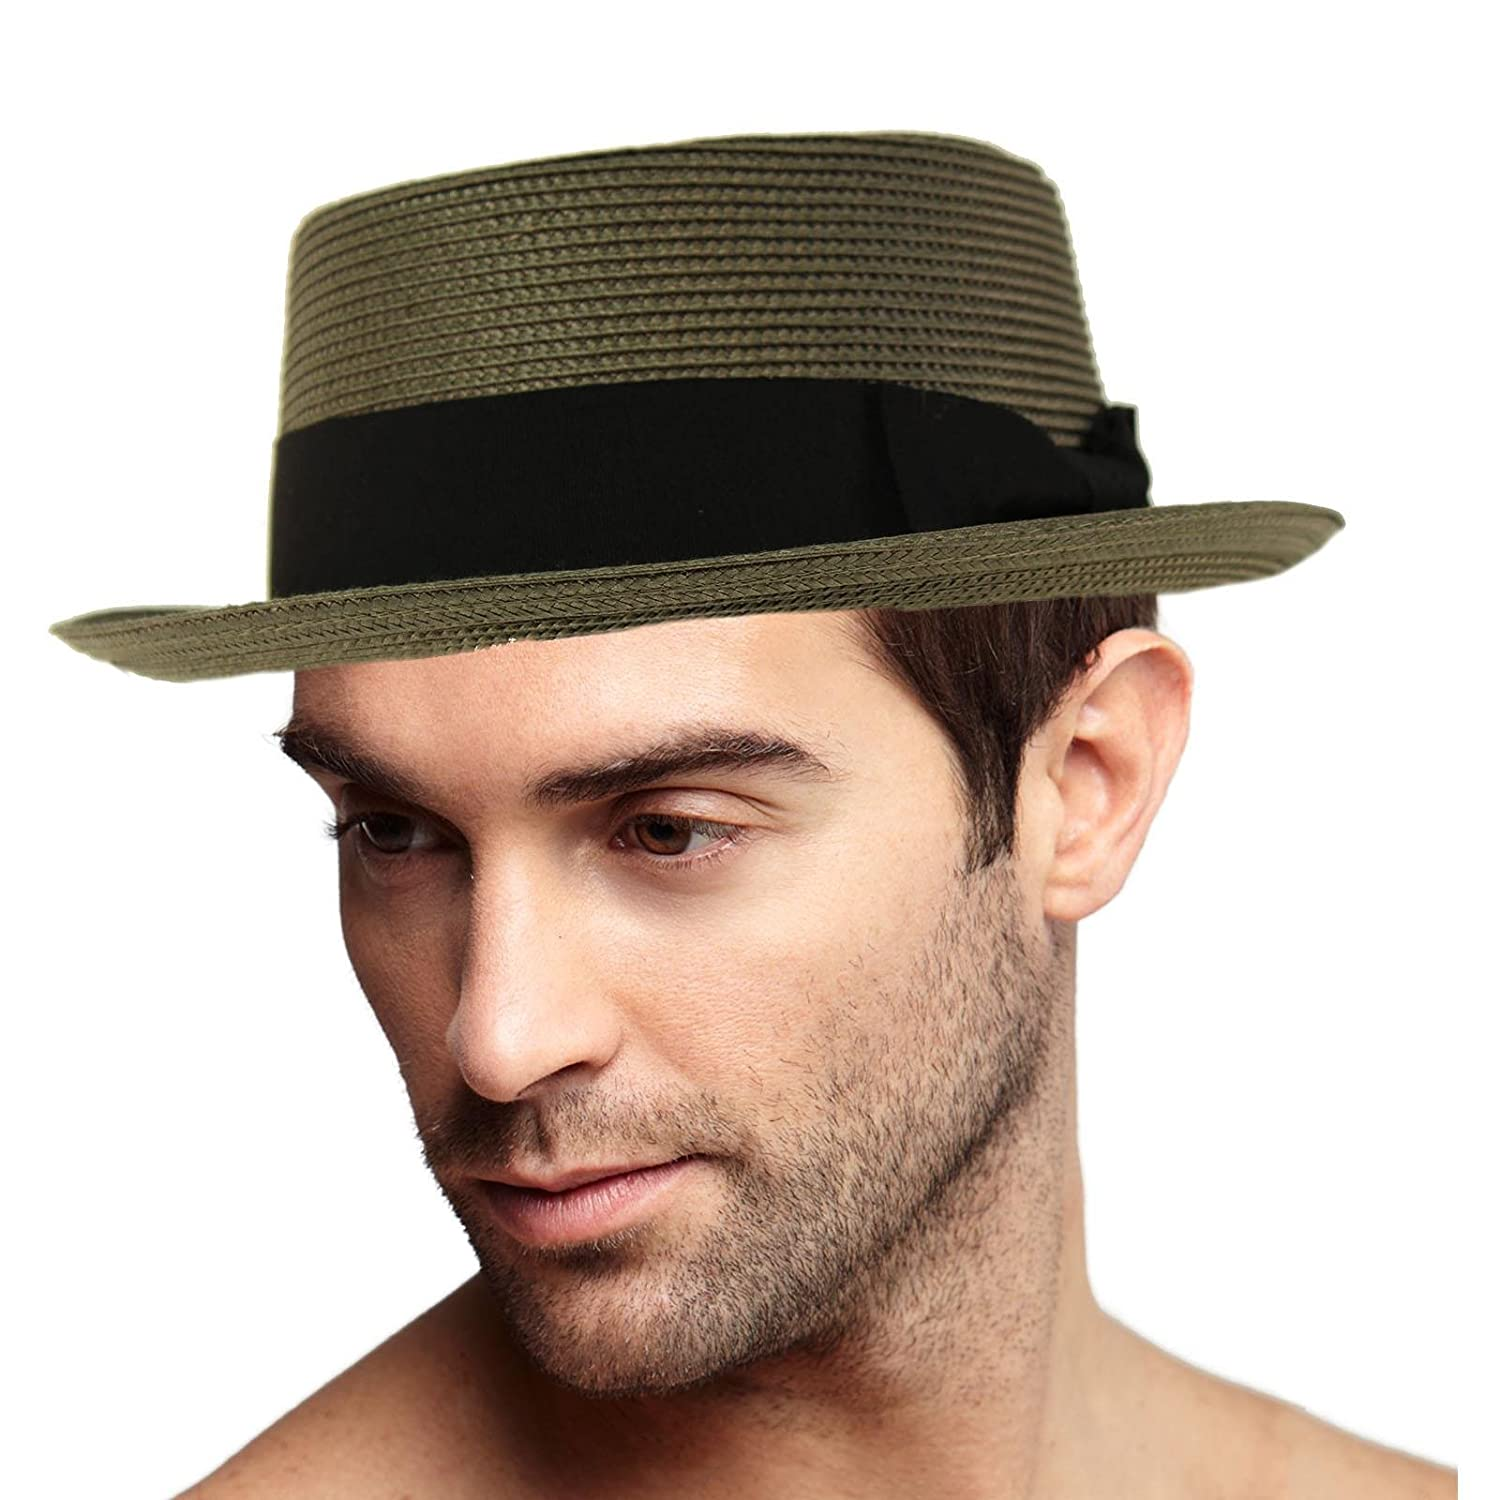 019c910faeb3e Epoch Men s Everyday Light Summer Ribbon Porkpie Boater Derby Fedora Sun Hat  at Amazon Men s Clothing store